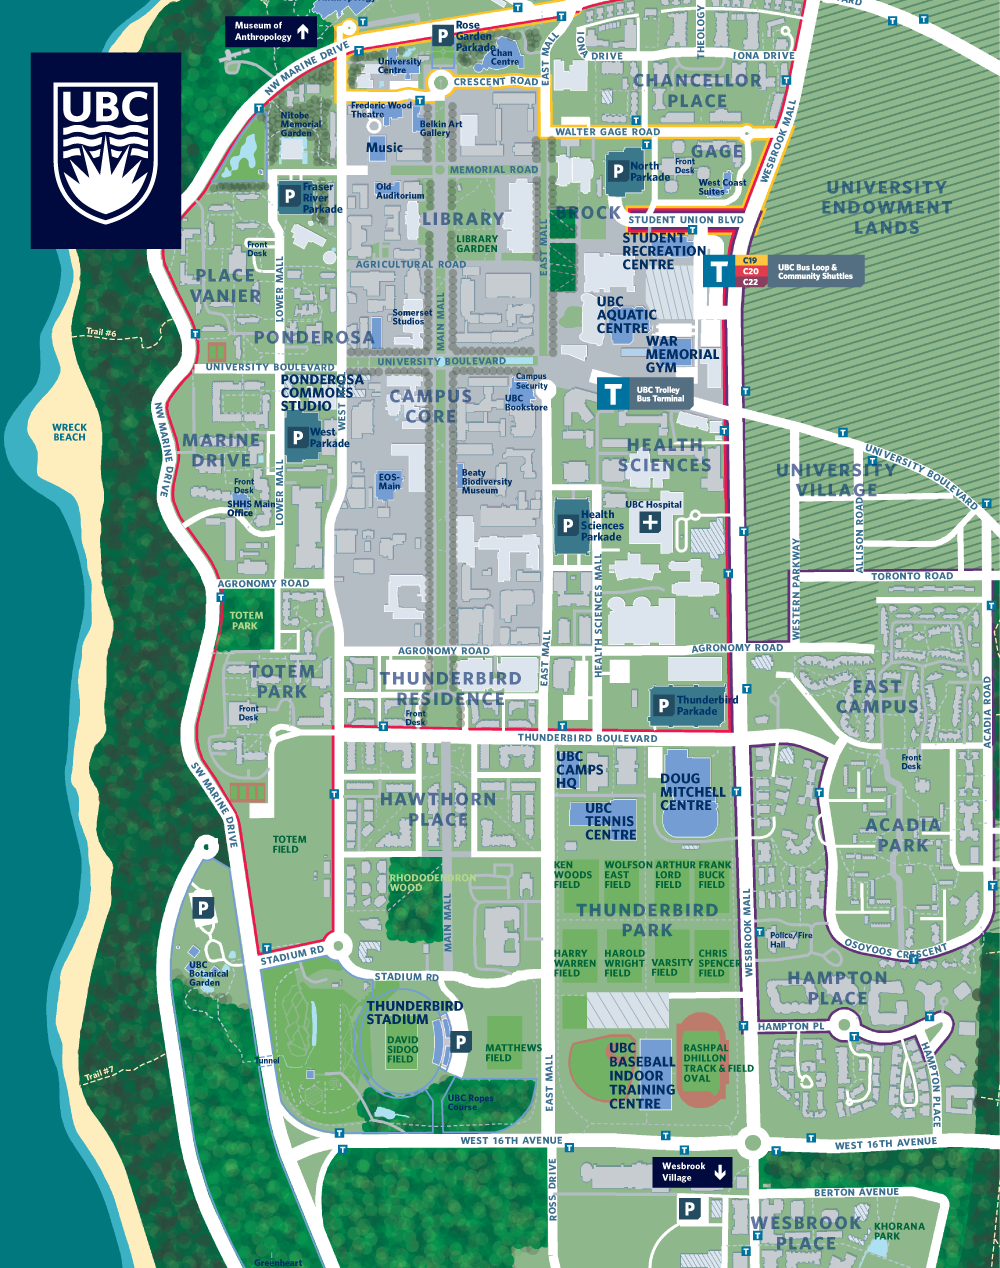 2016 UBC Sport Facilities Map